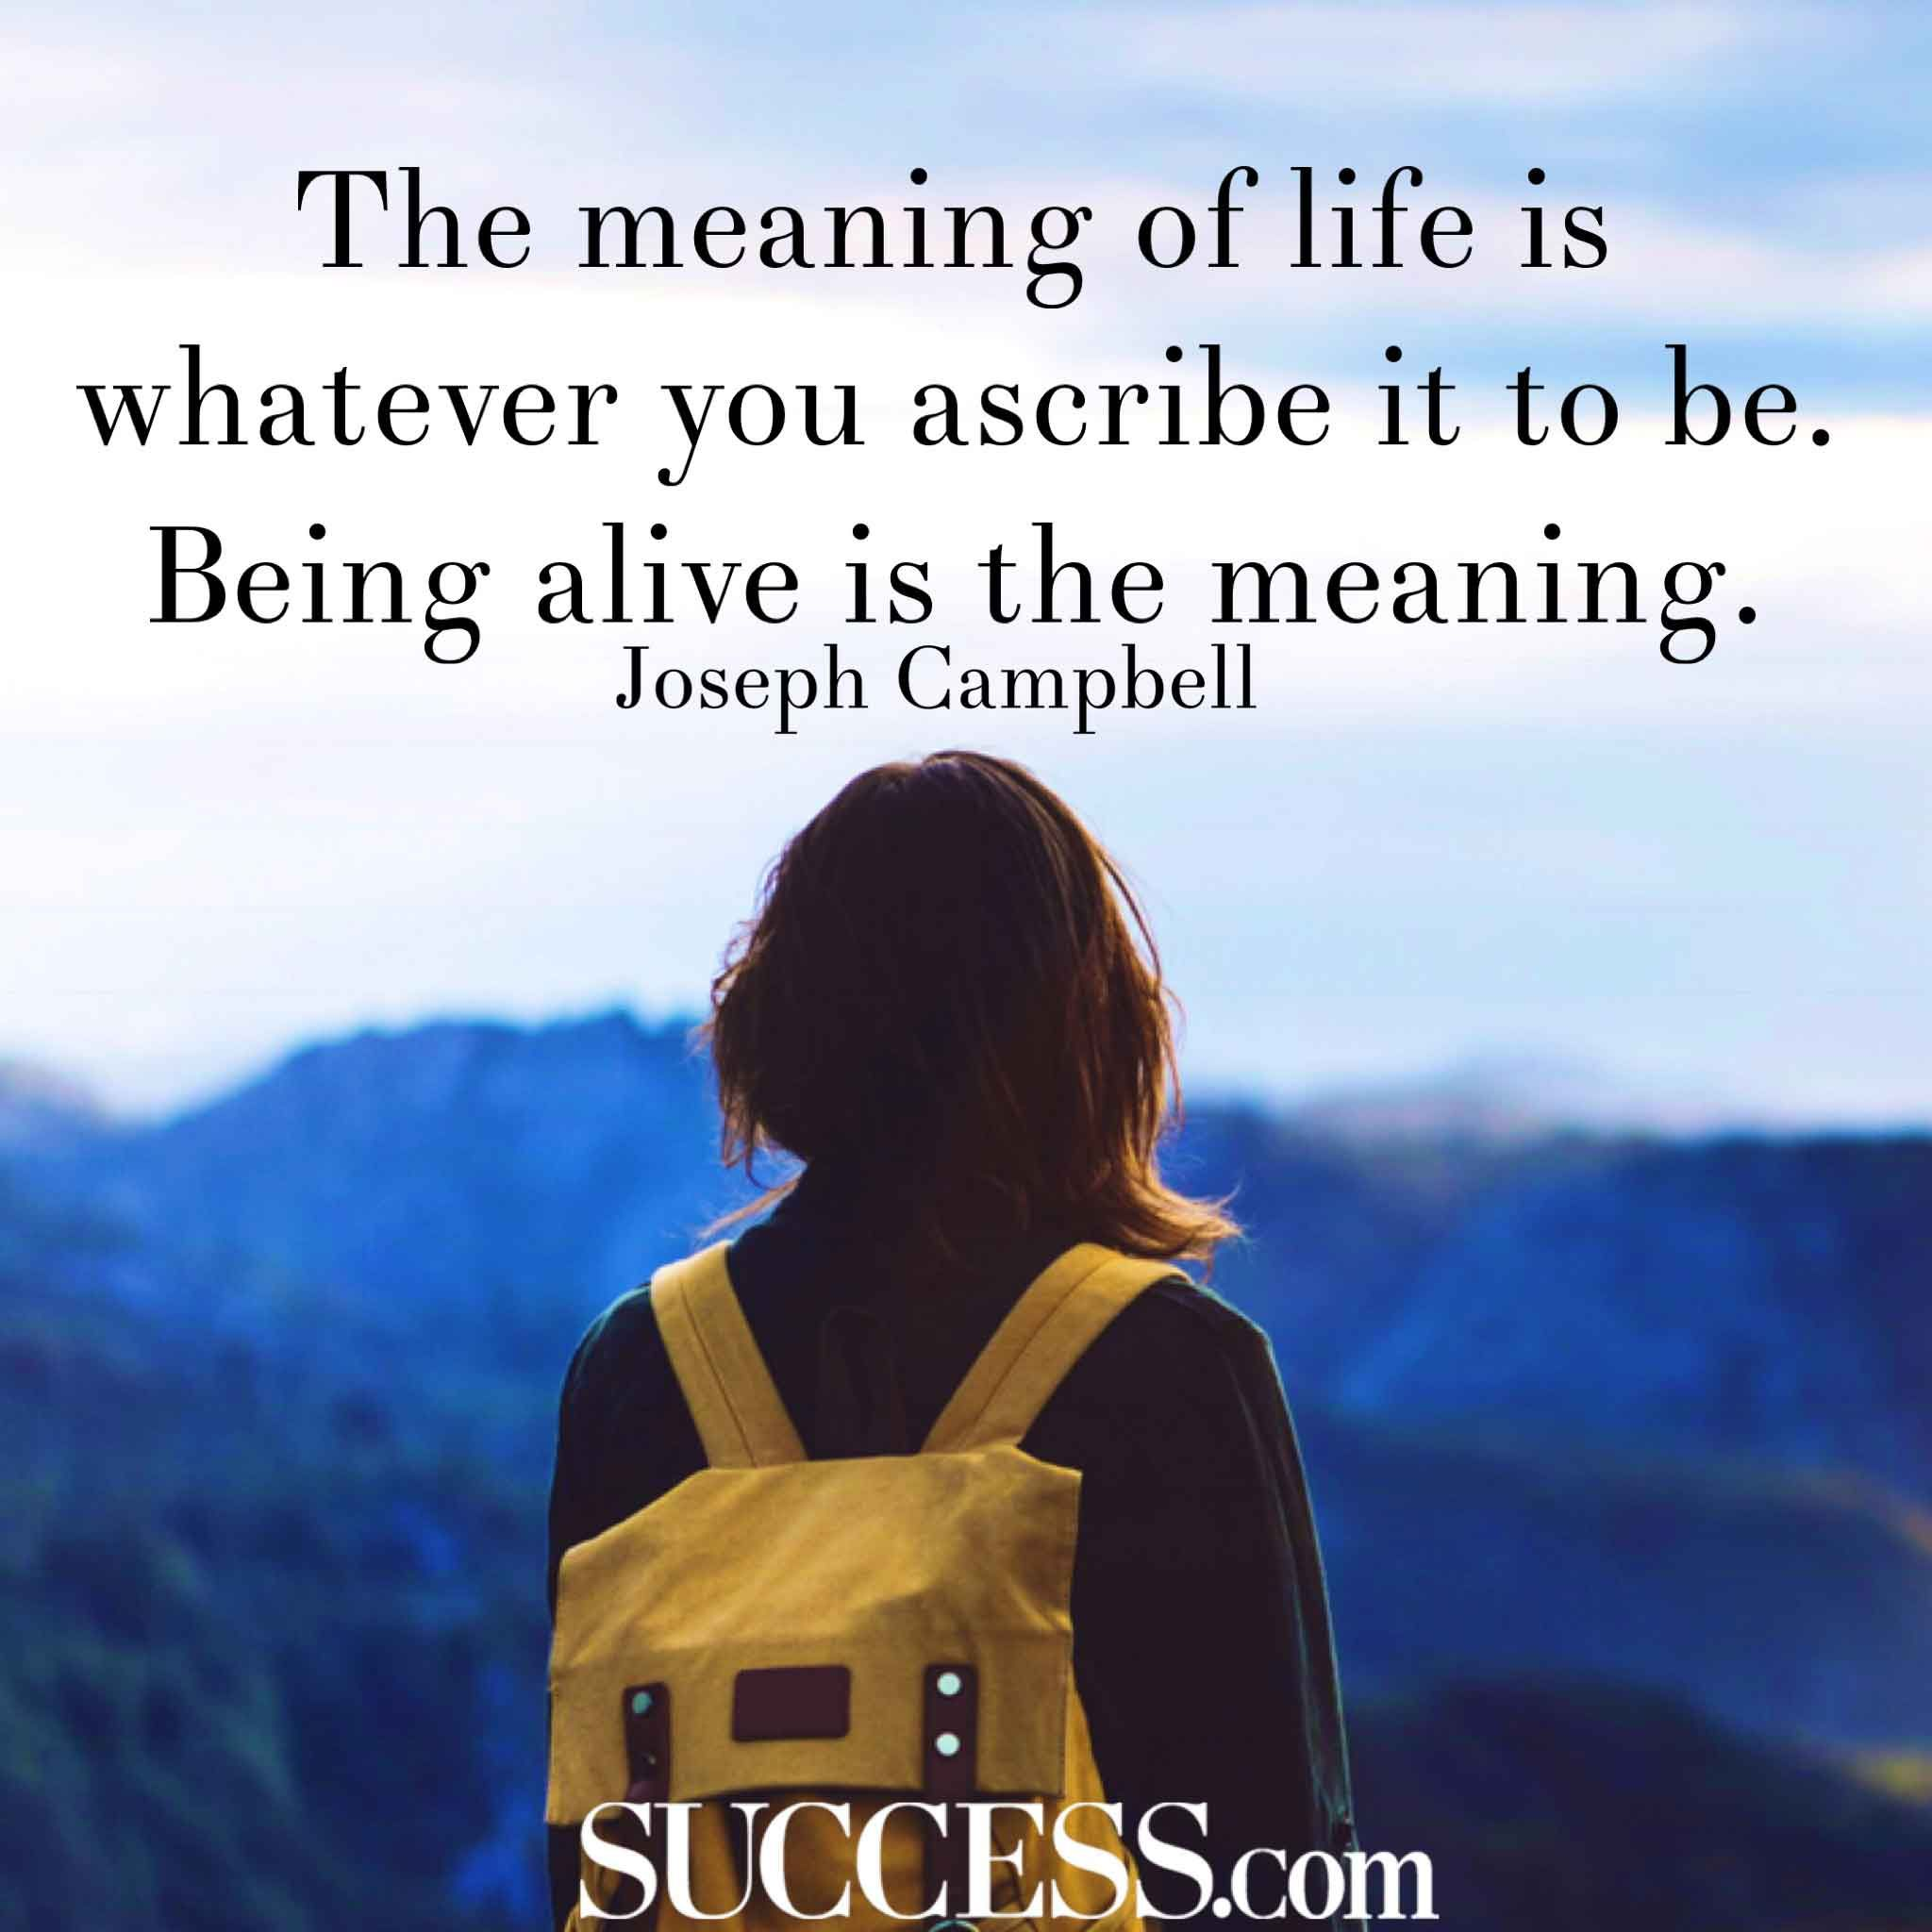 Meaning Of Life Quotes Extraordinary The Meaning Of Life In 15 Wise Quotes  Success  Self Help